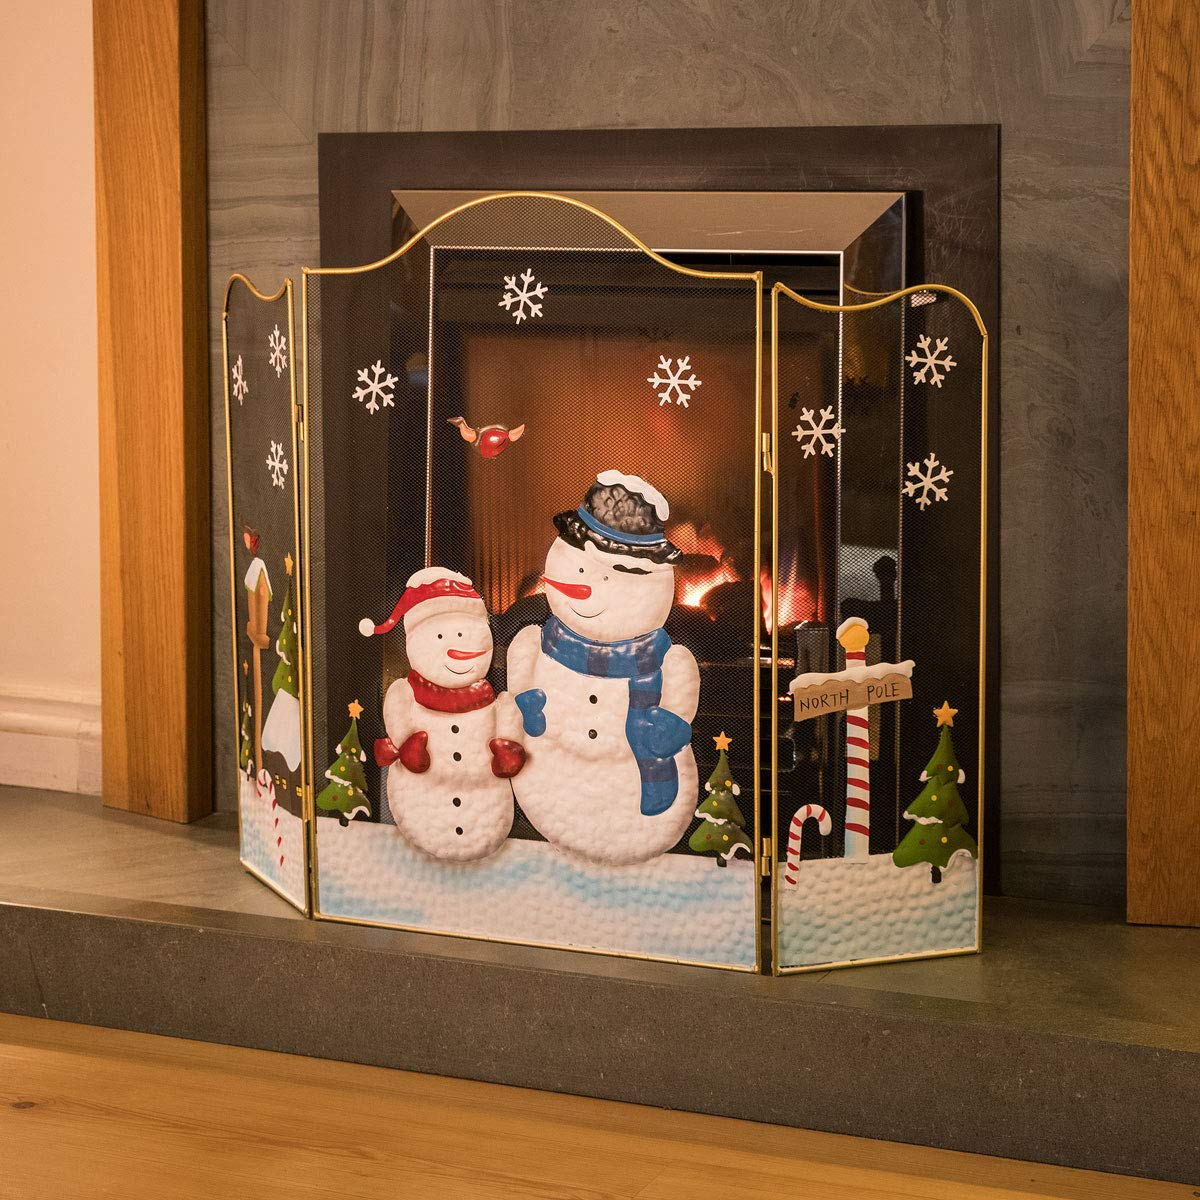 CHRISTOW Christmas Snowman Fireguard, Metal Mesh Fire Screen Guard, Festive Decoration, Hand Painted, Large H61cm